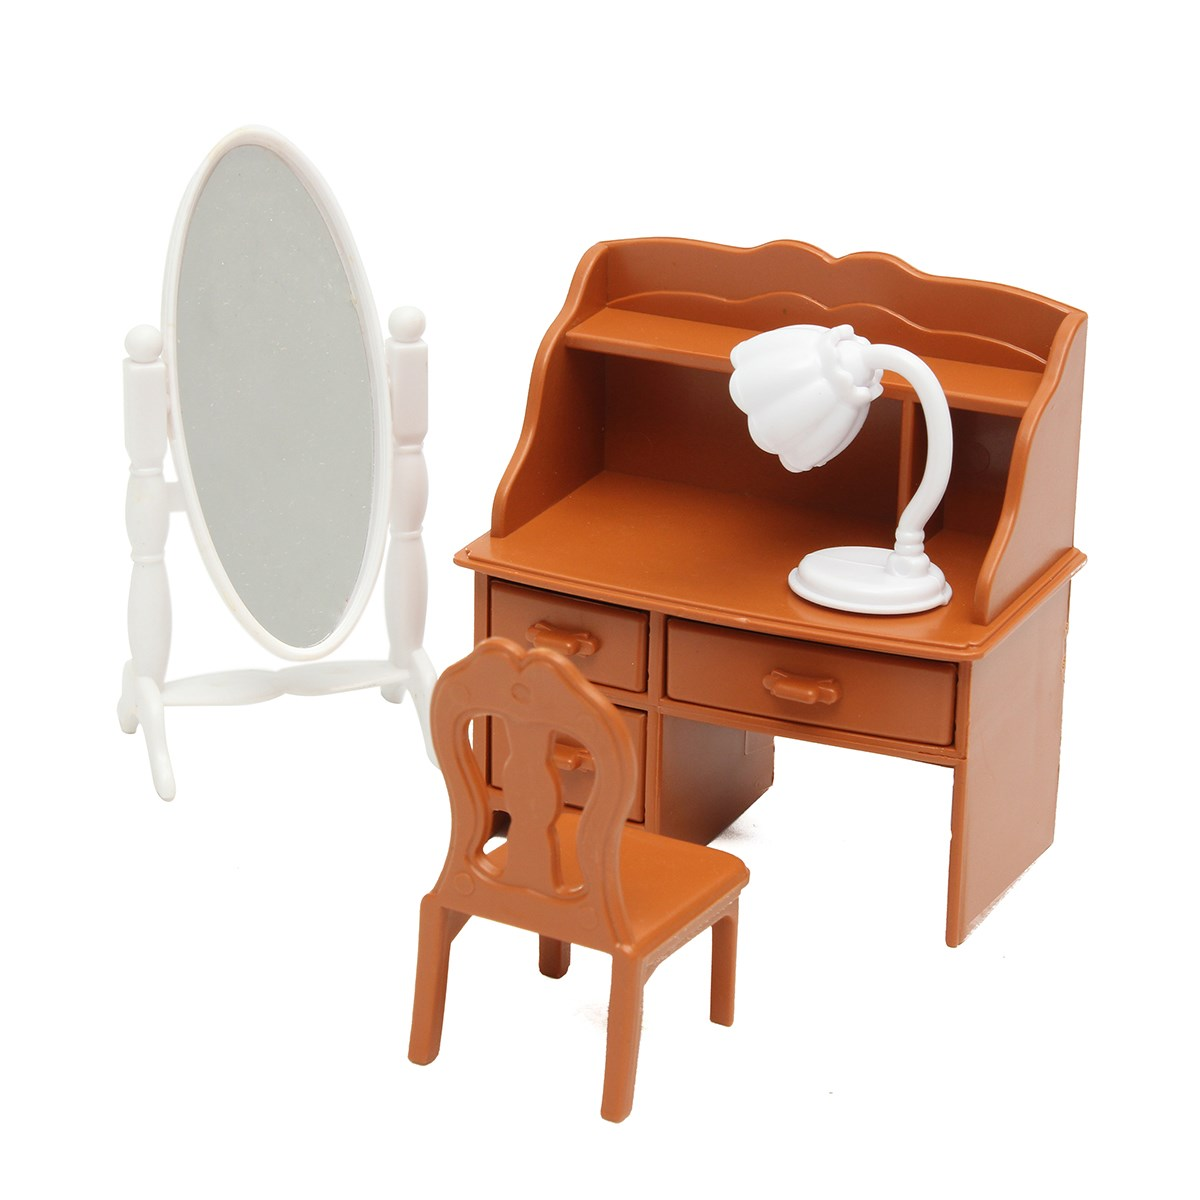 Miniature-Living-Room-Dressing-Table-Furniture-Sets-For-Mini-Children-DollHouse-Home-Decor-Kids-Toy-Doll-House-Toys-Gift-2